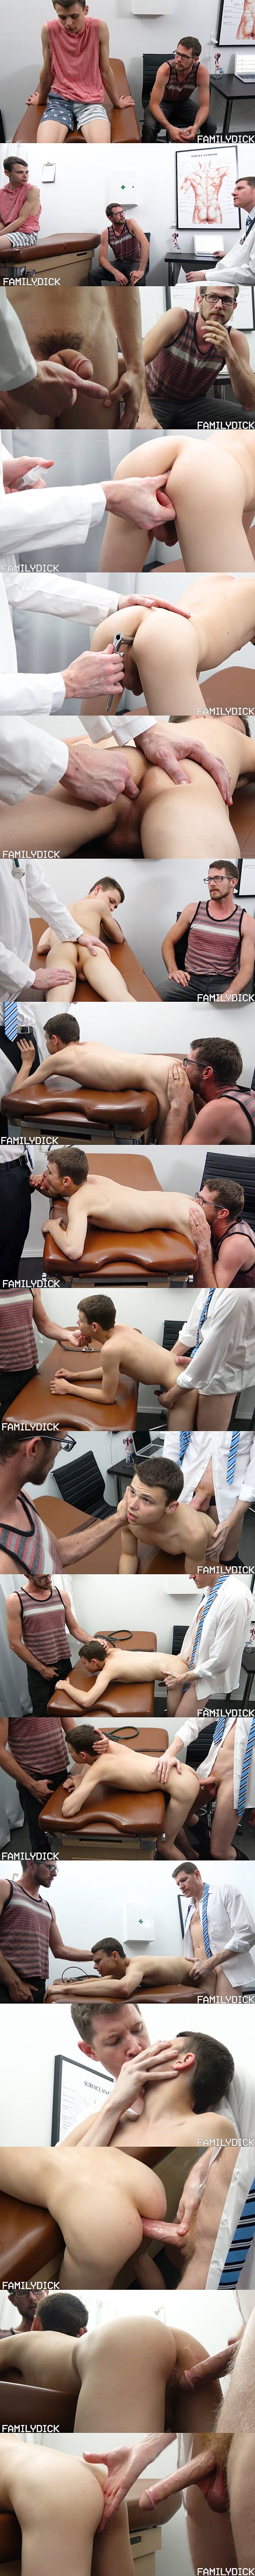 President Olsen and Brother Eyring bareback Elder Xanders in Doctor's Office Visit at Familydick 02